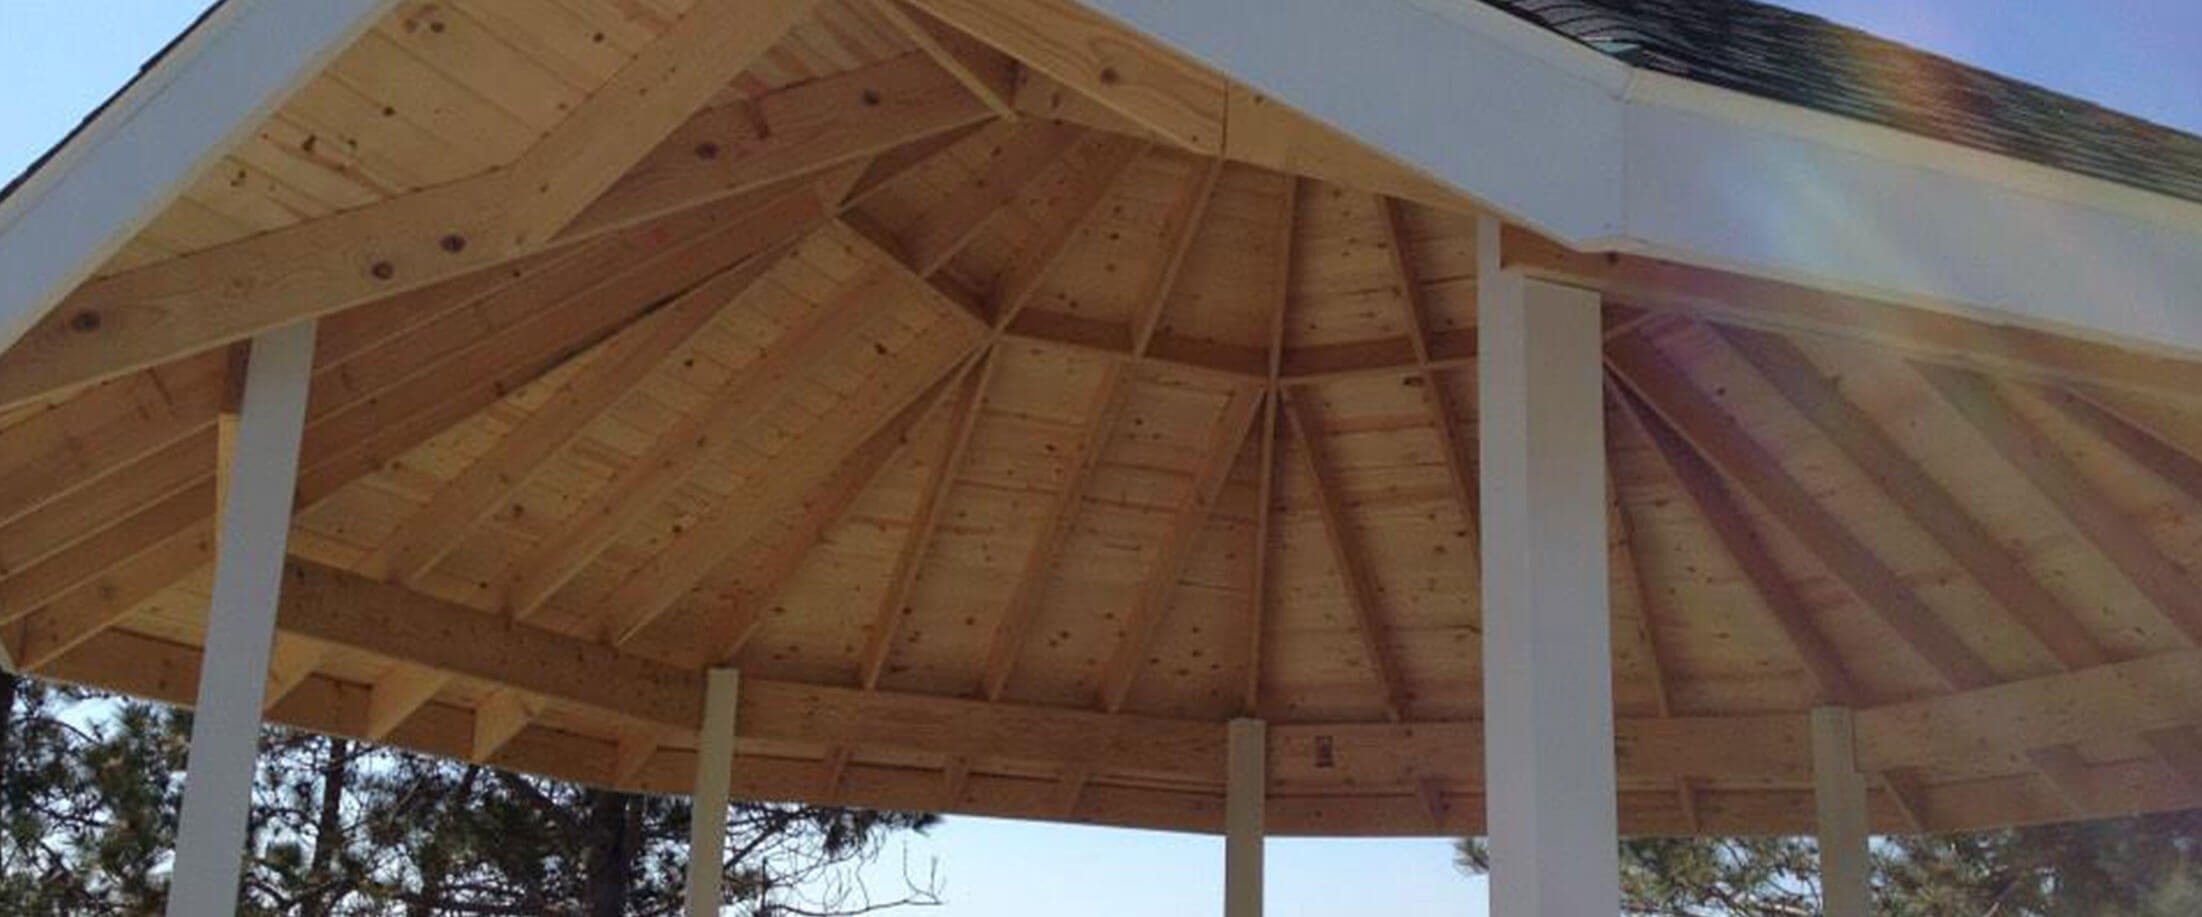 Deck pavilion built by Lifestyle Lumber